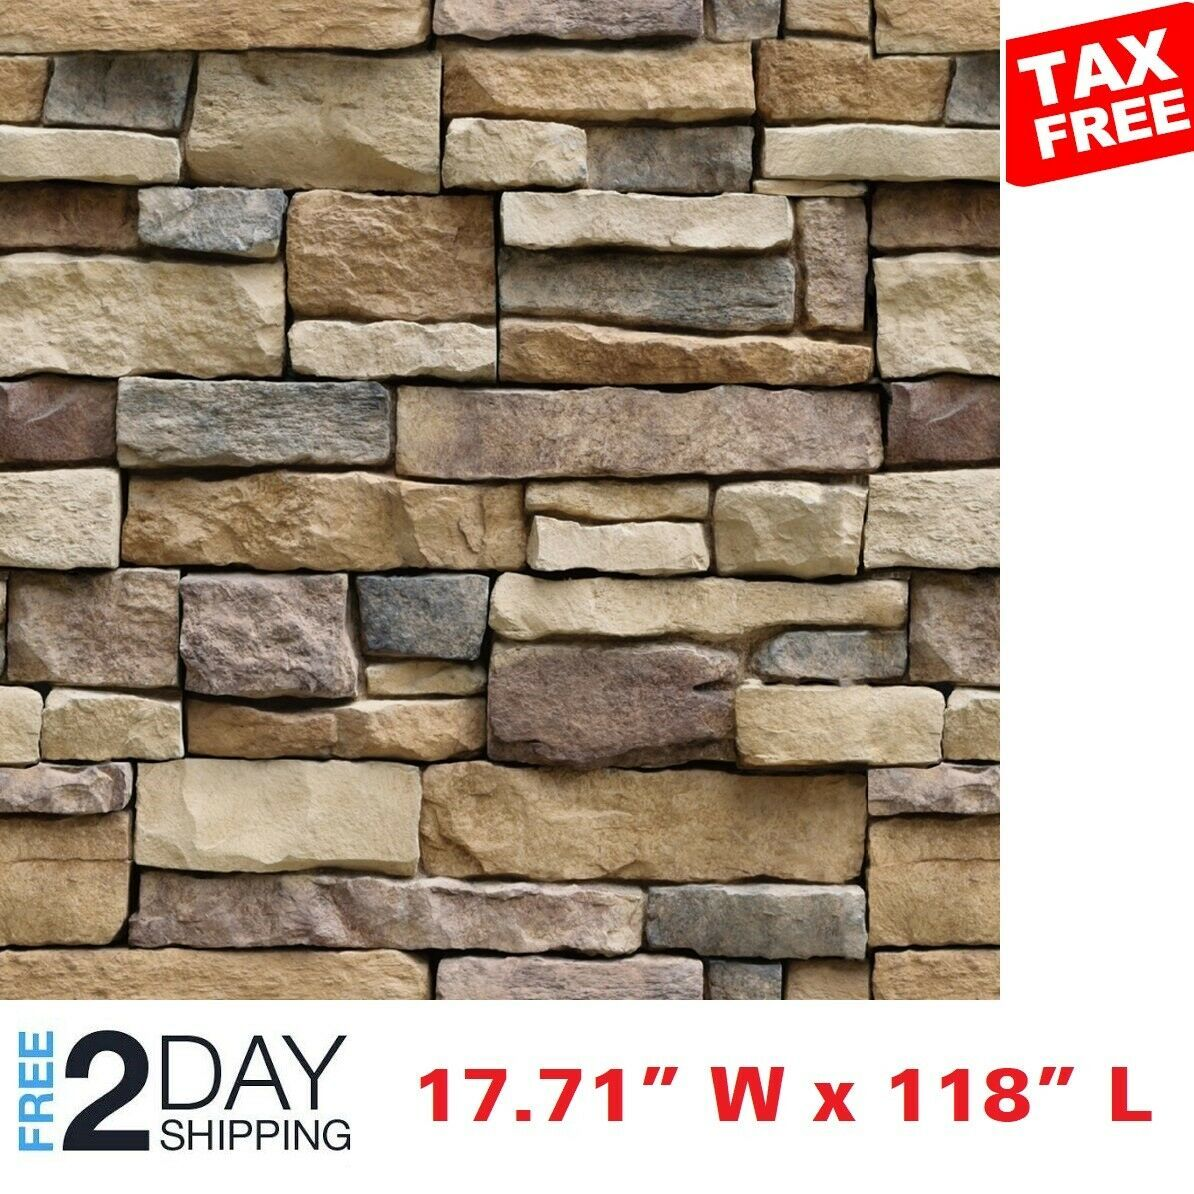 Brick Wallpaper Peel & Stick Easy Realistic Wall Self